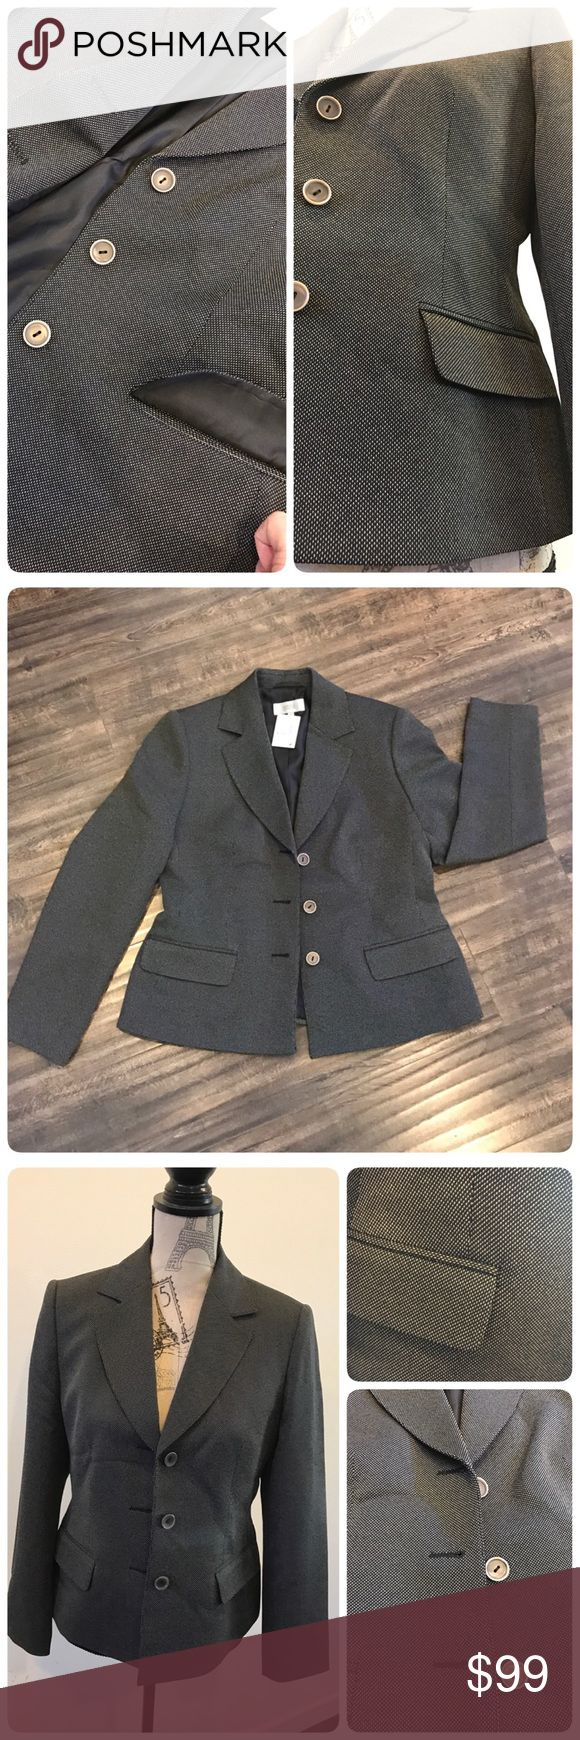 🆕Blazer size: 12 petite Blazer size 12 petite, color: black mix. New with tag. 100% polyester with lining. Marks & Spencer Jackets & Coats Blazers